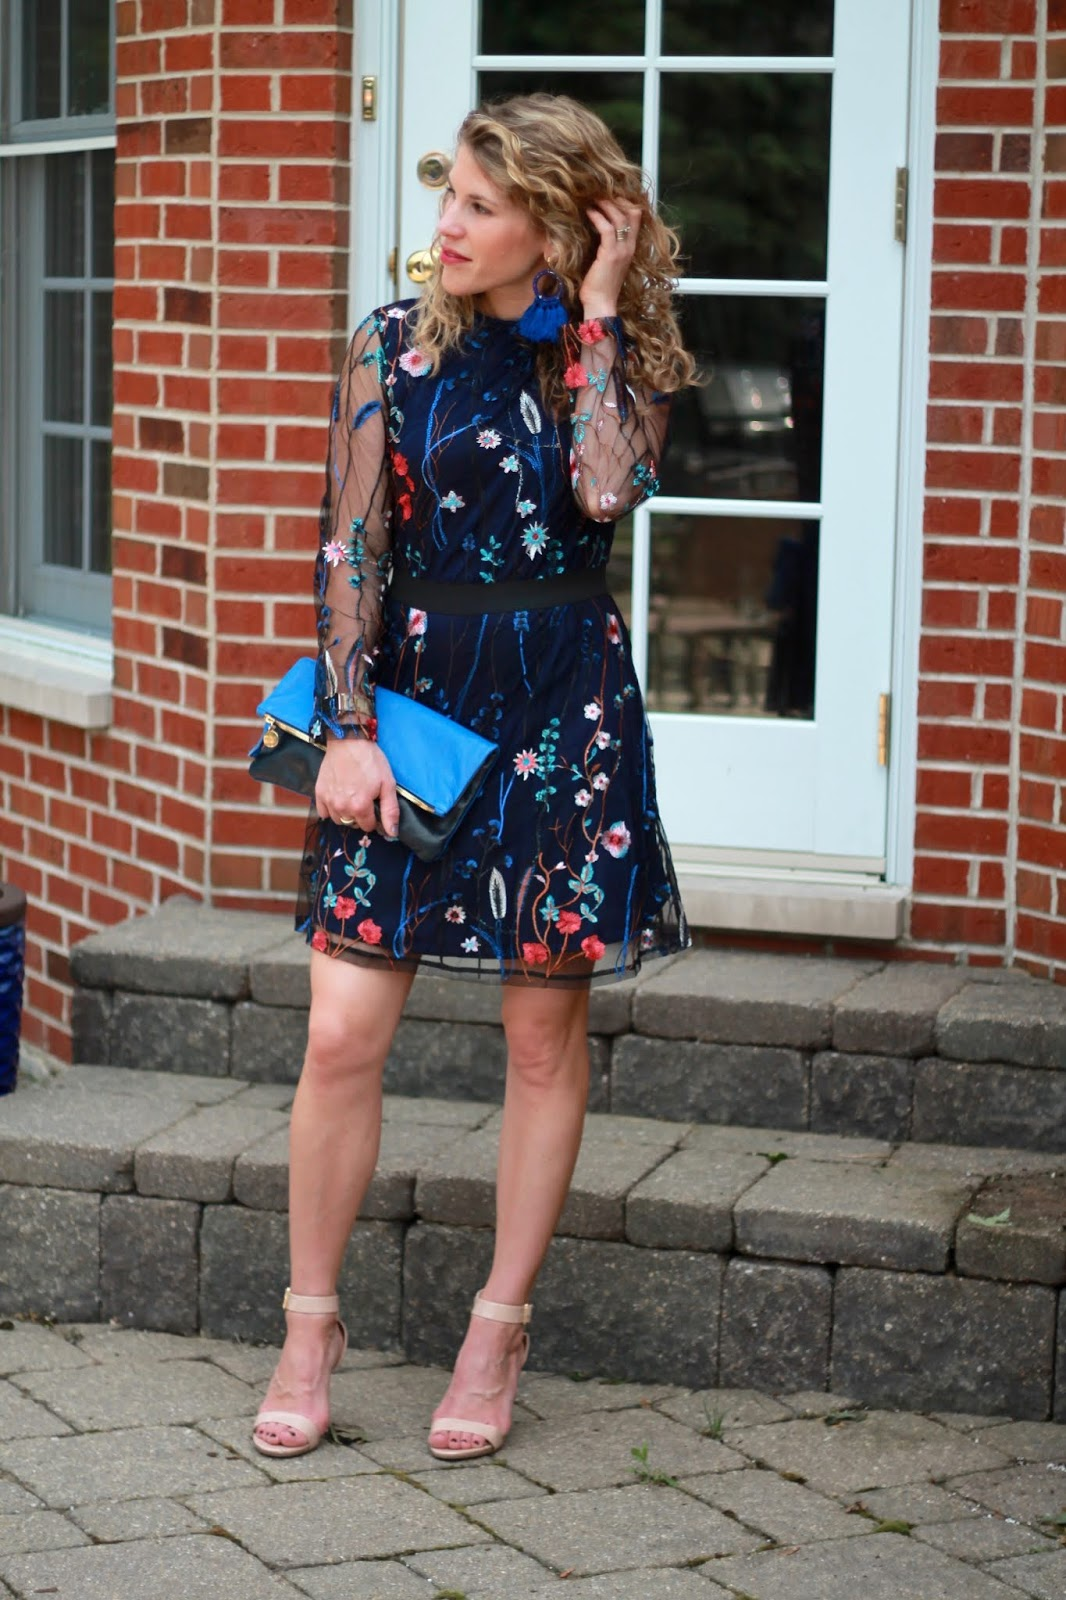 mesh floral embroidered dress, blue clutch, blue tassel earrings, nude heels